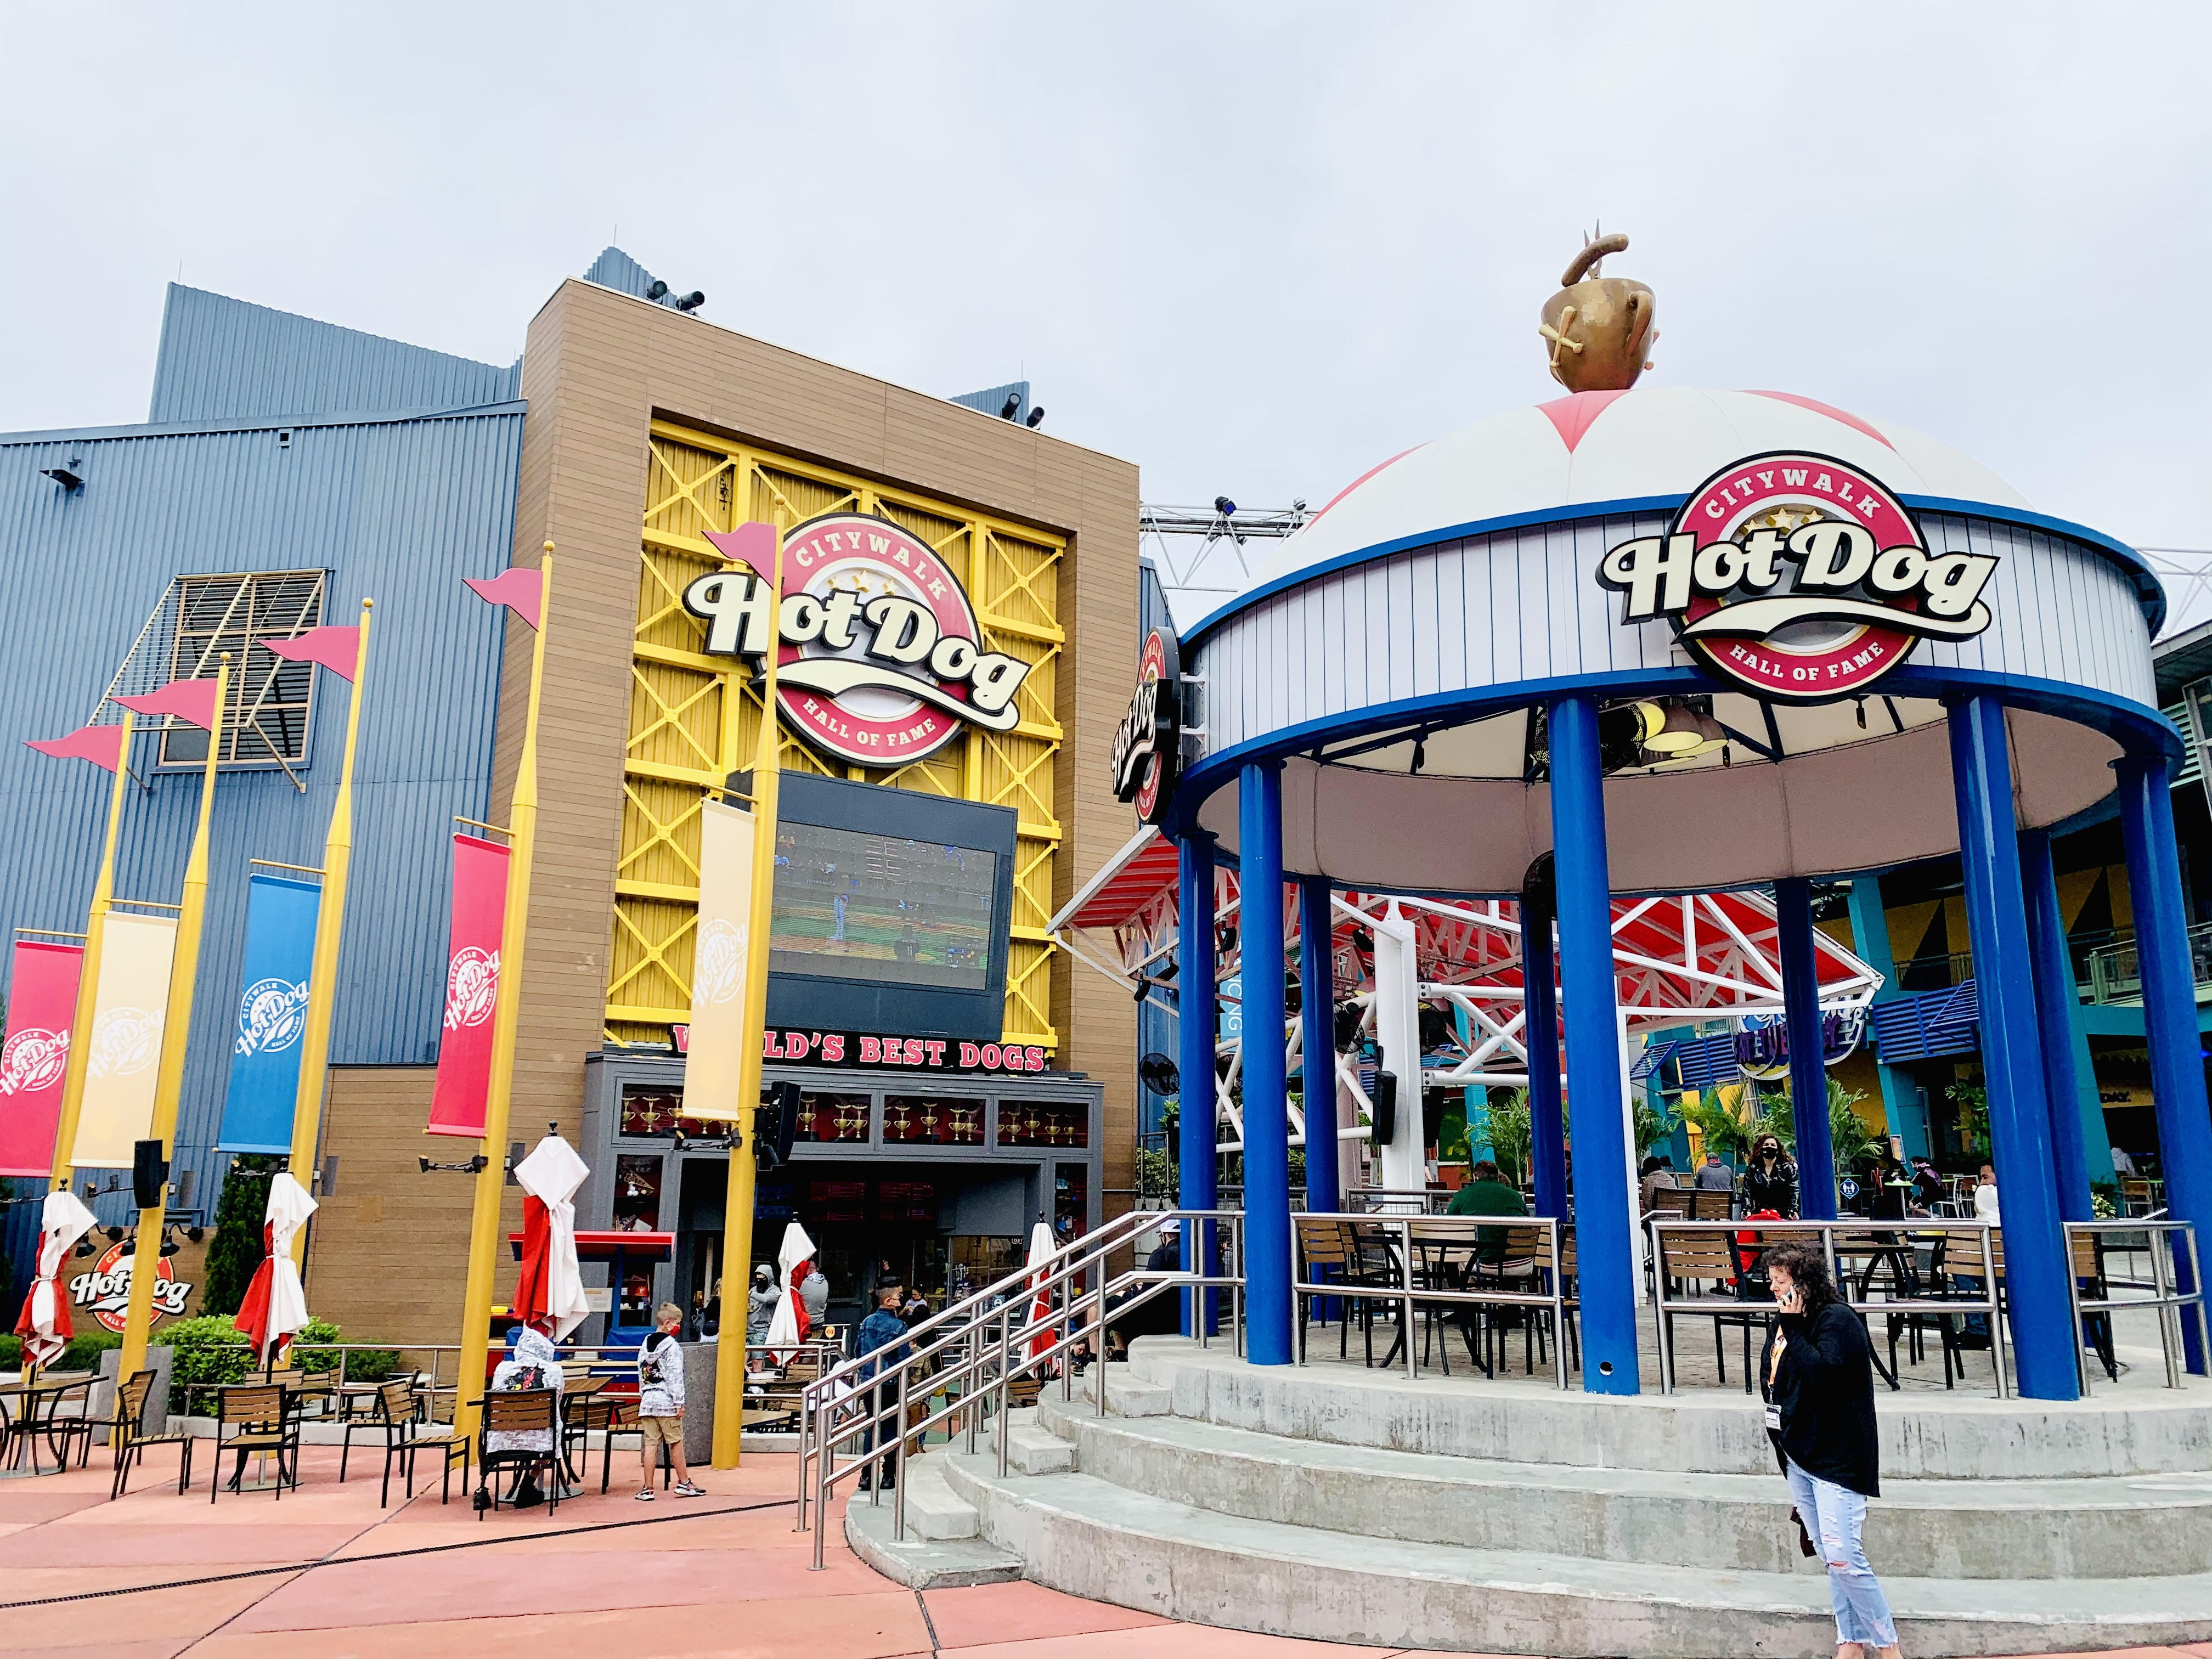 The 7 best restaurants in Citywalk ranked by top U.S. family travel blog, Travel With A Plan! (Hot Dog Hall of Fame)